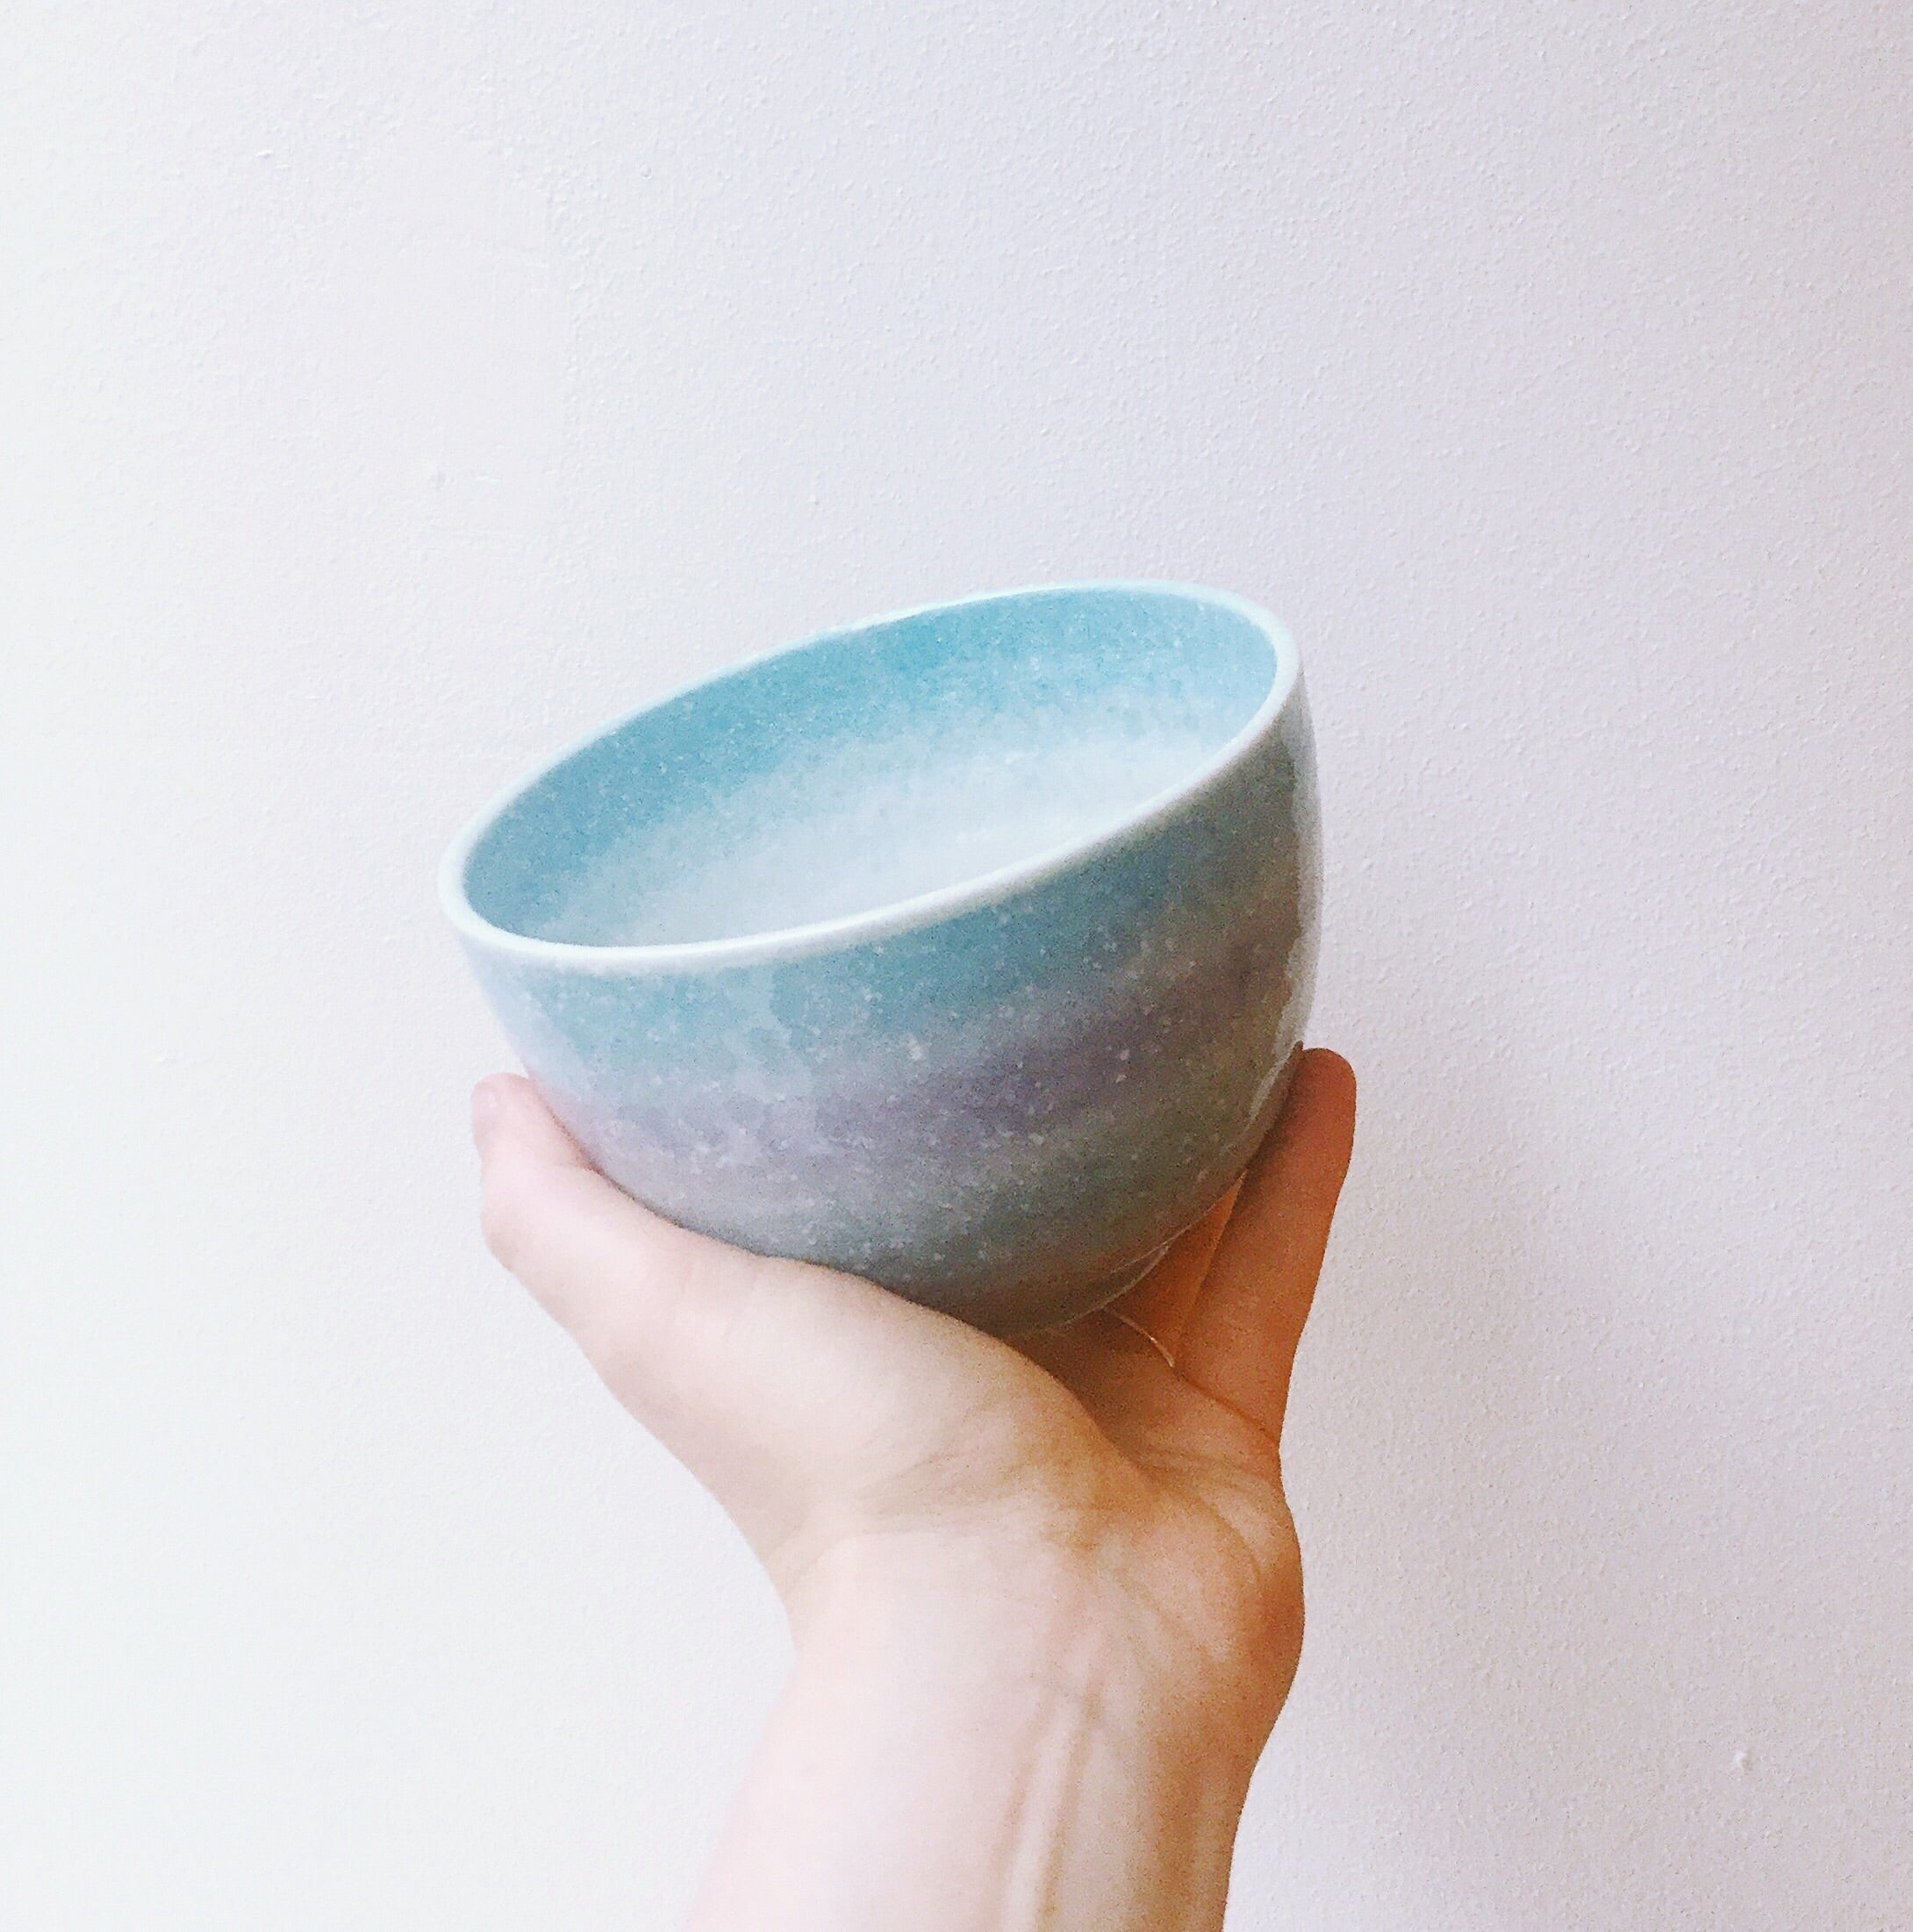 PRE-ORDER Japan series : Turquoise/ light blue bowl